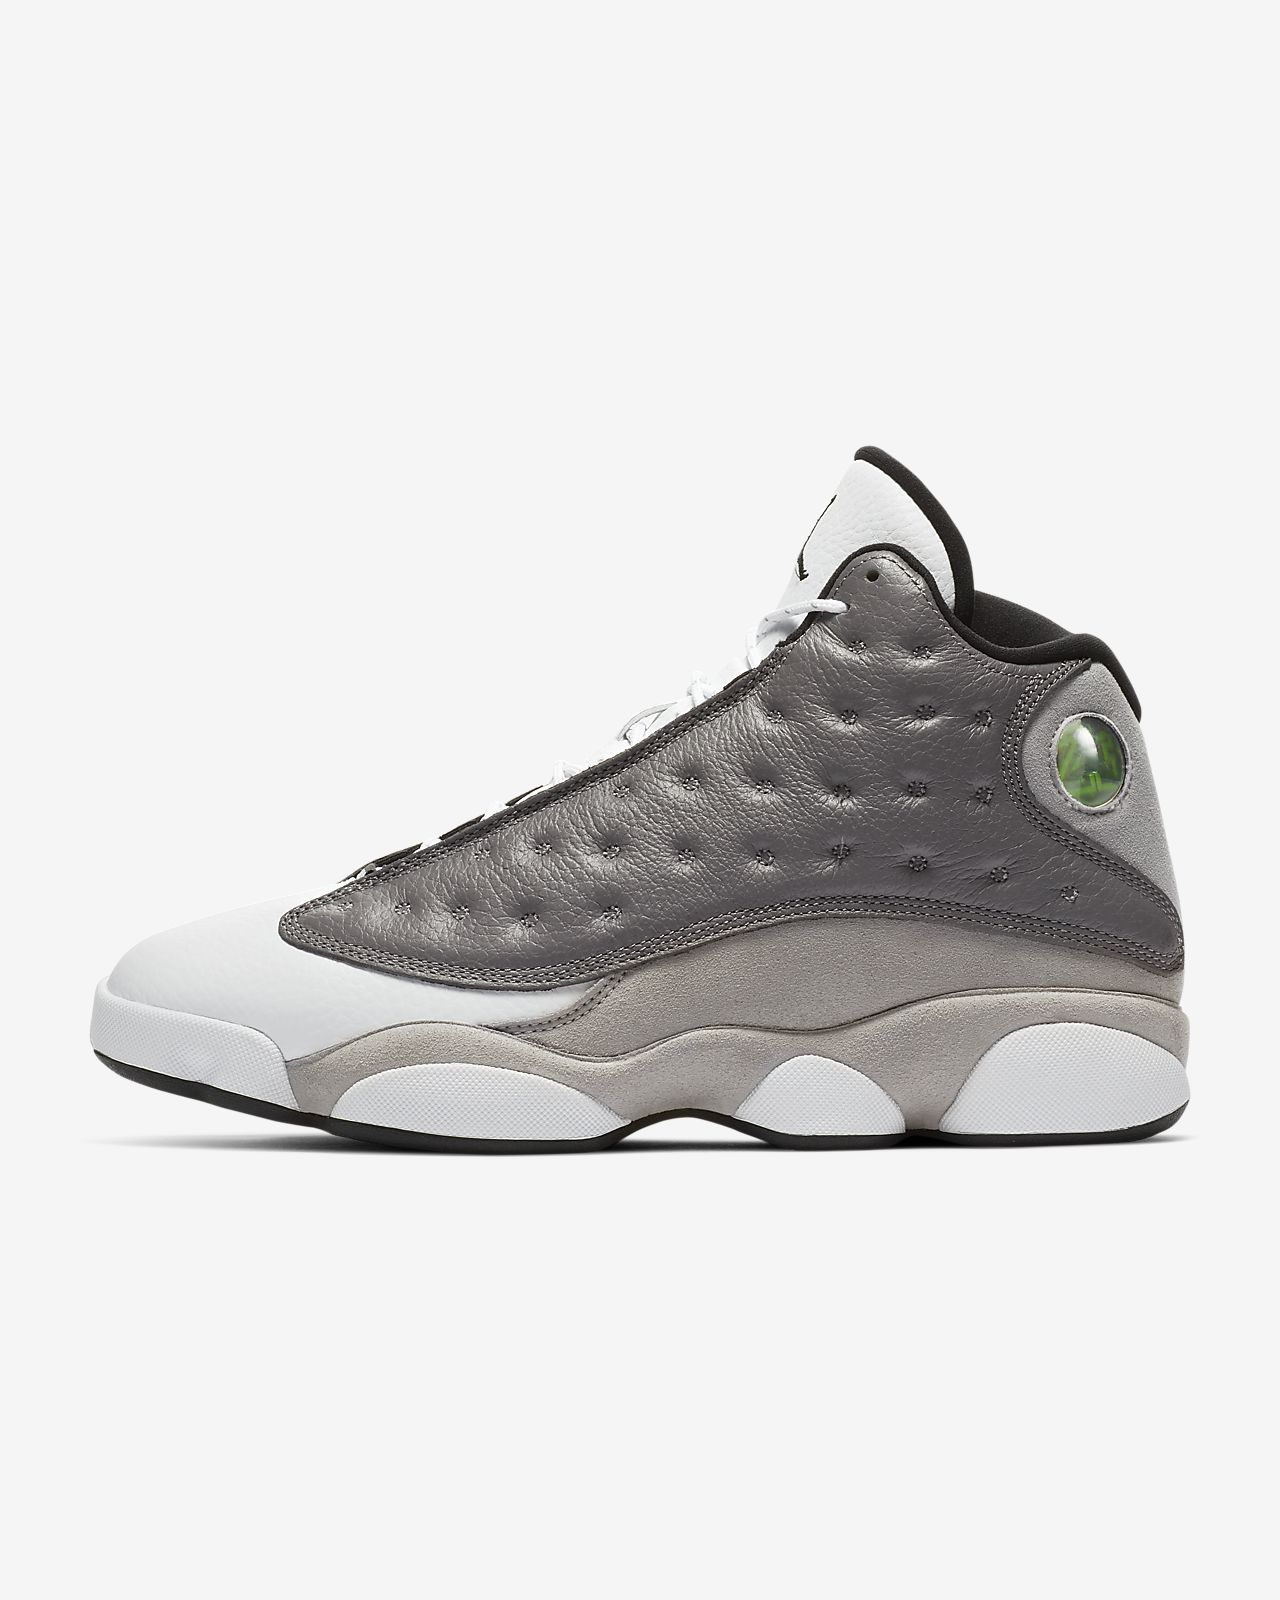 09b973a79526 Air Jordan 13 Retro Men s Shoe. Nike.com ID